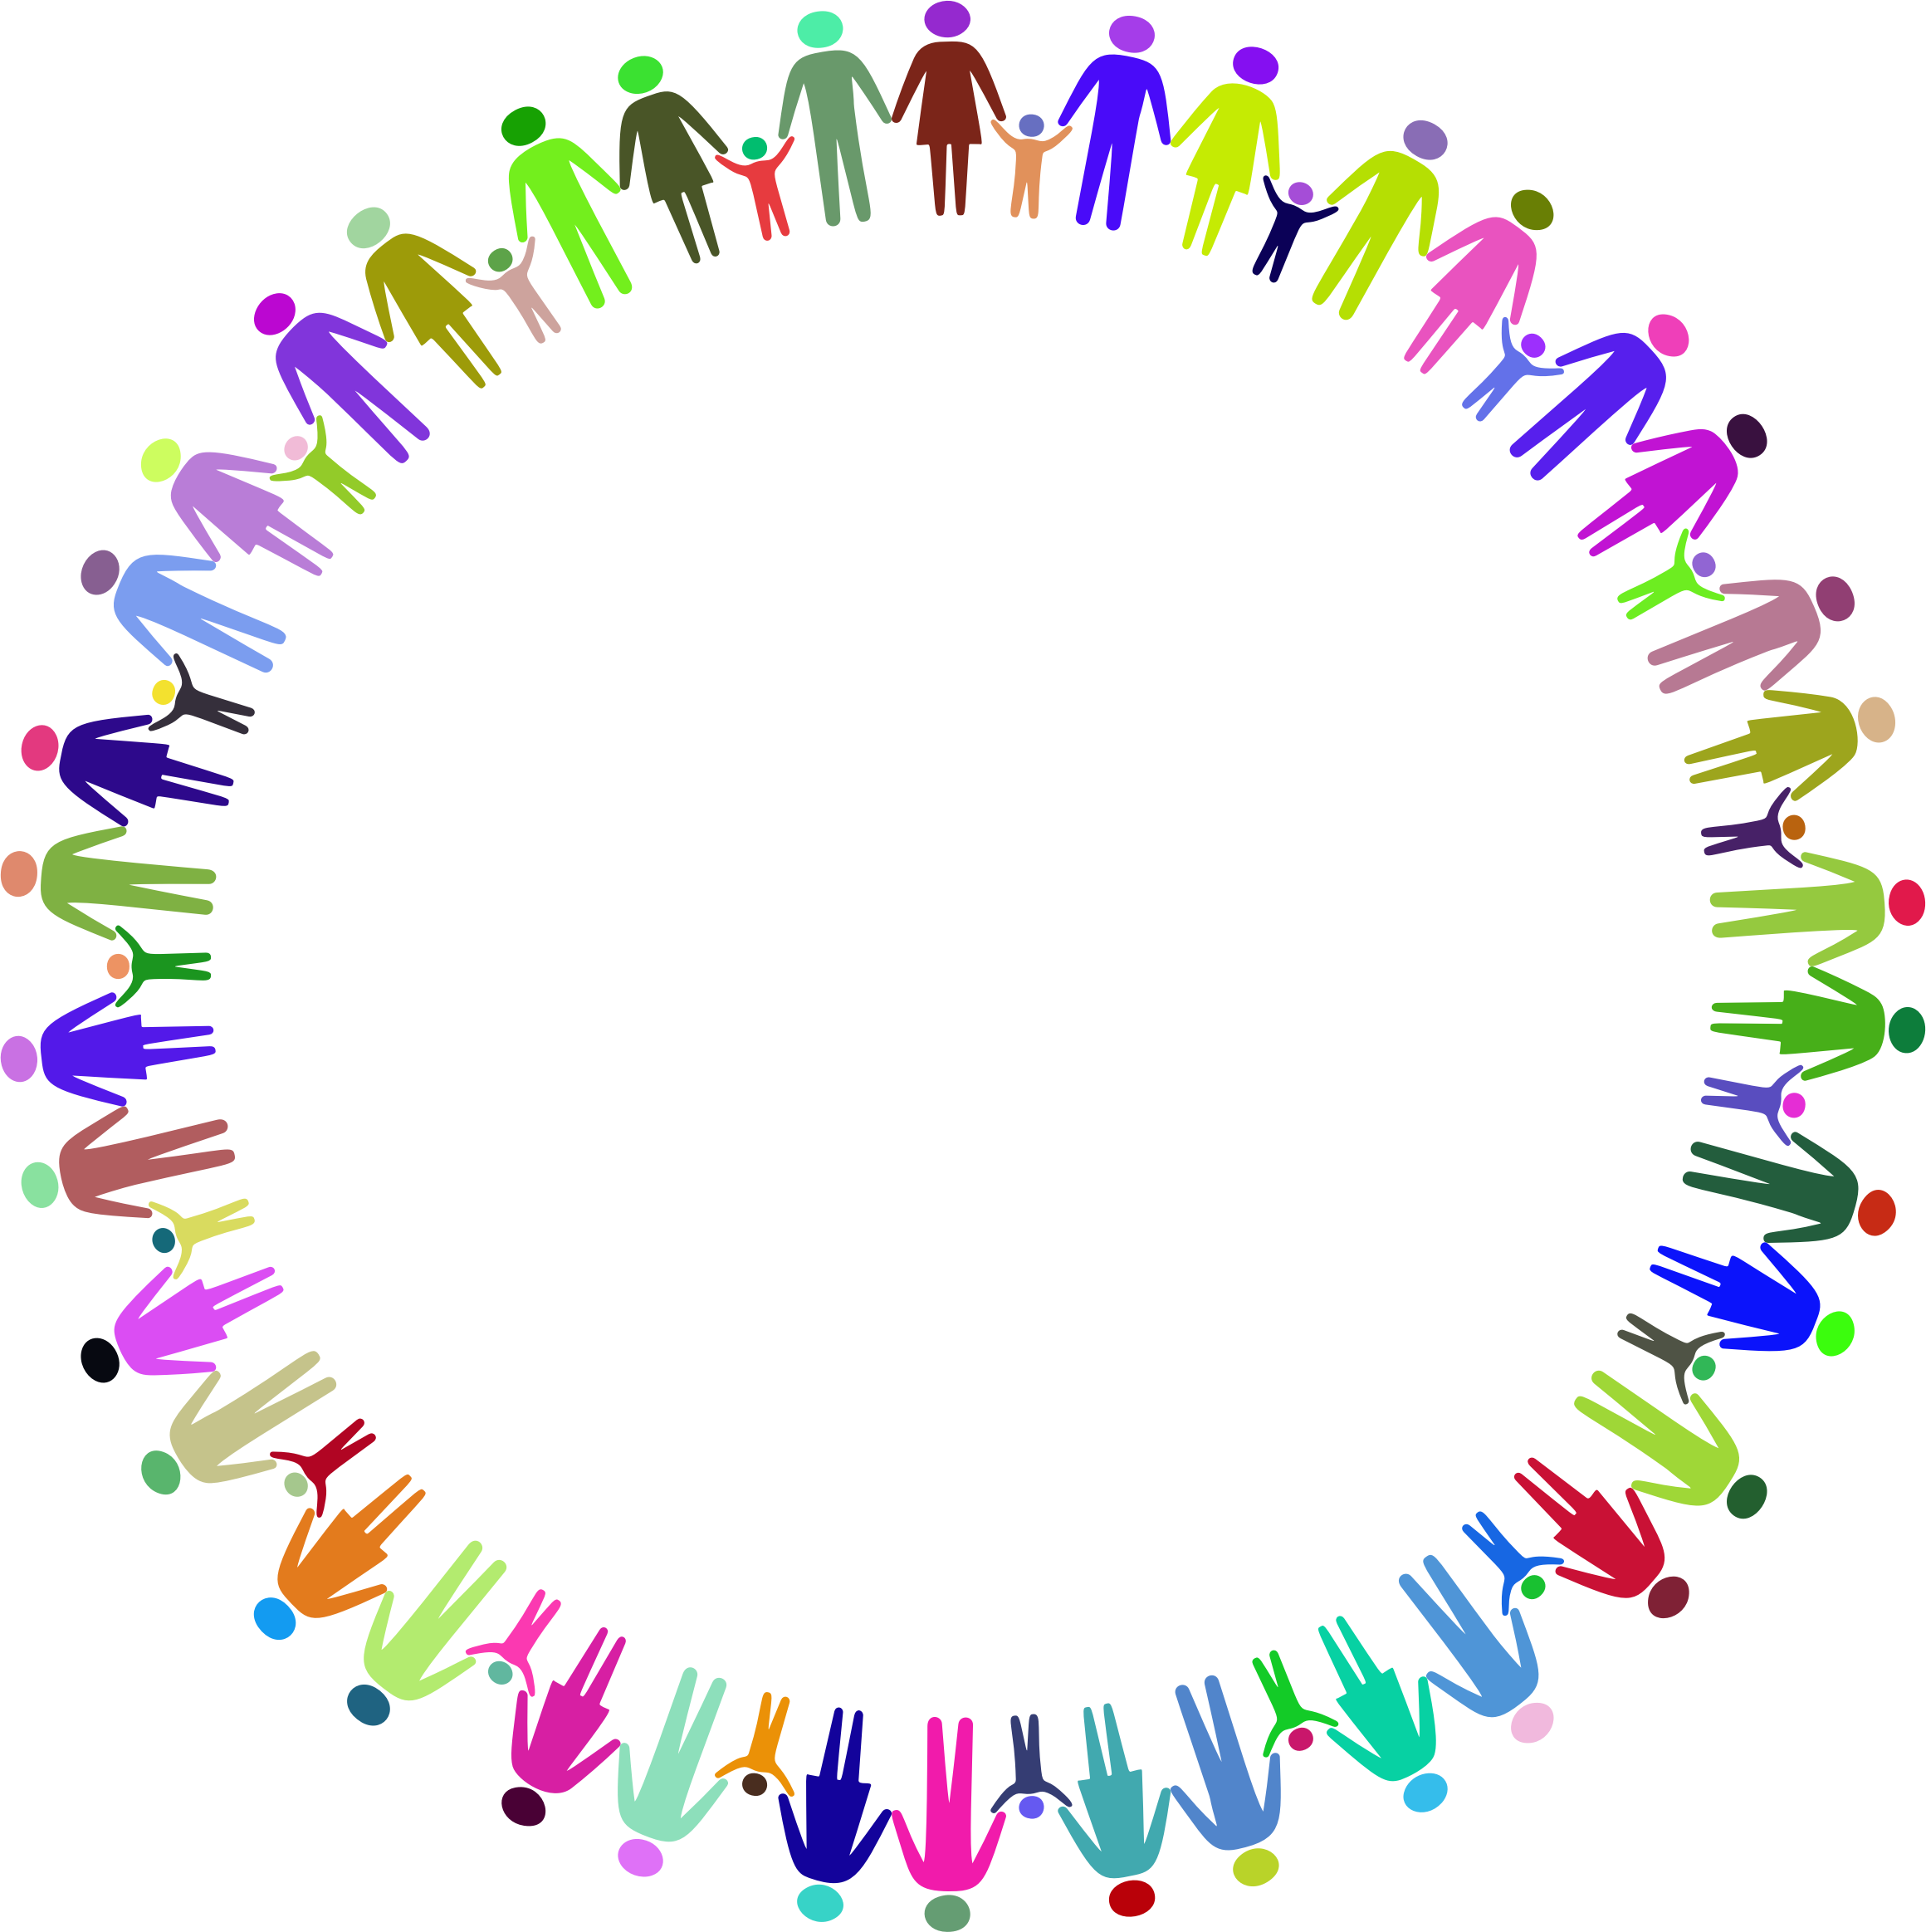 Multiracial hands making a circle clipart clip art free download Holding Hands In A Circle Group with 52+ items clip art free download